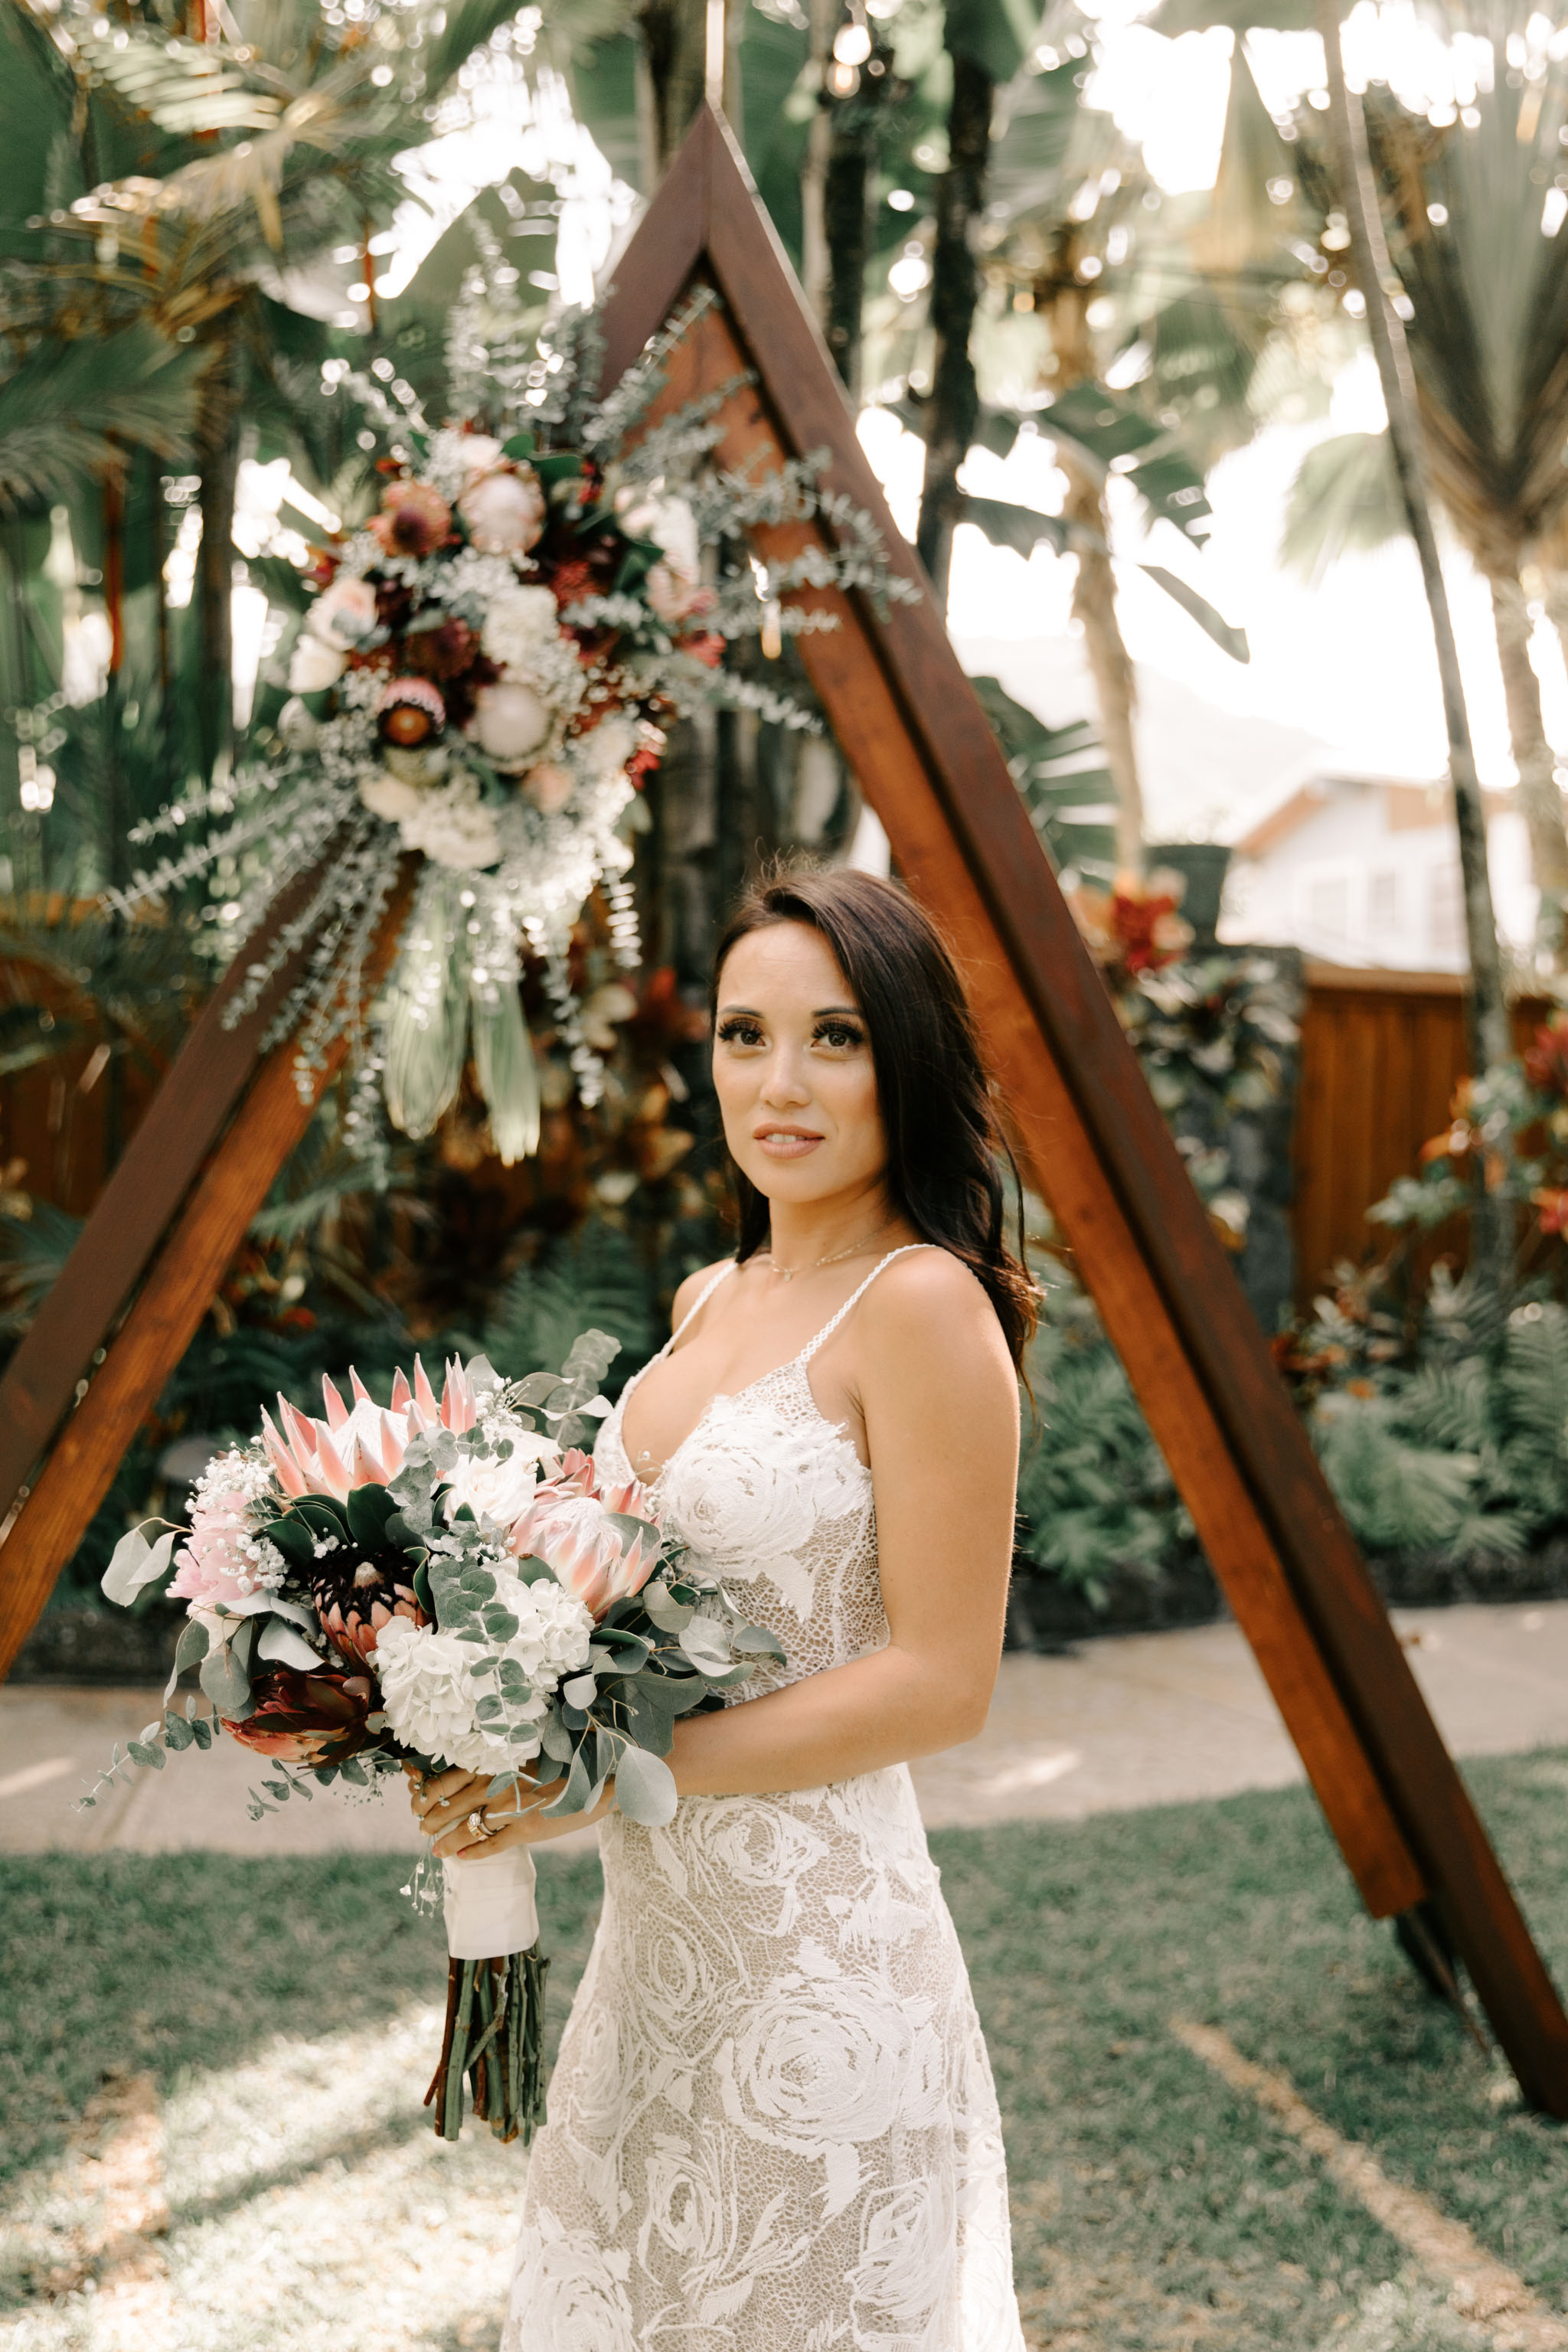 Grace Loves Lace Rosa Wedding Gown with Protea Wedding Bouquet - Hale Koa Phineas Estate Wedding By Hawaii Wedding Photographer Desiree Leilani